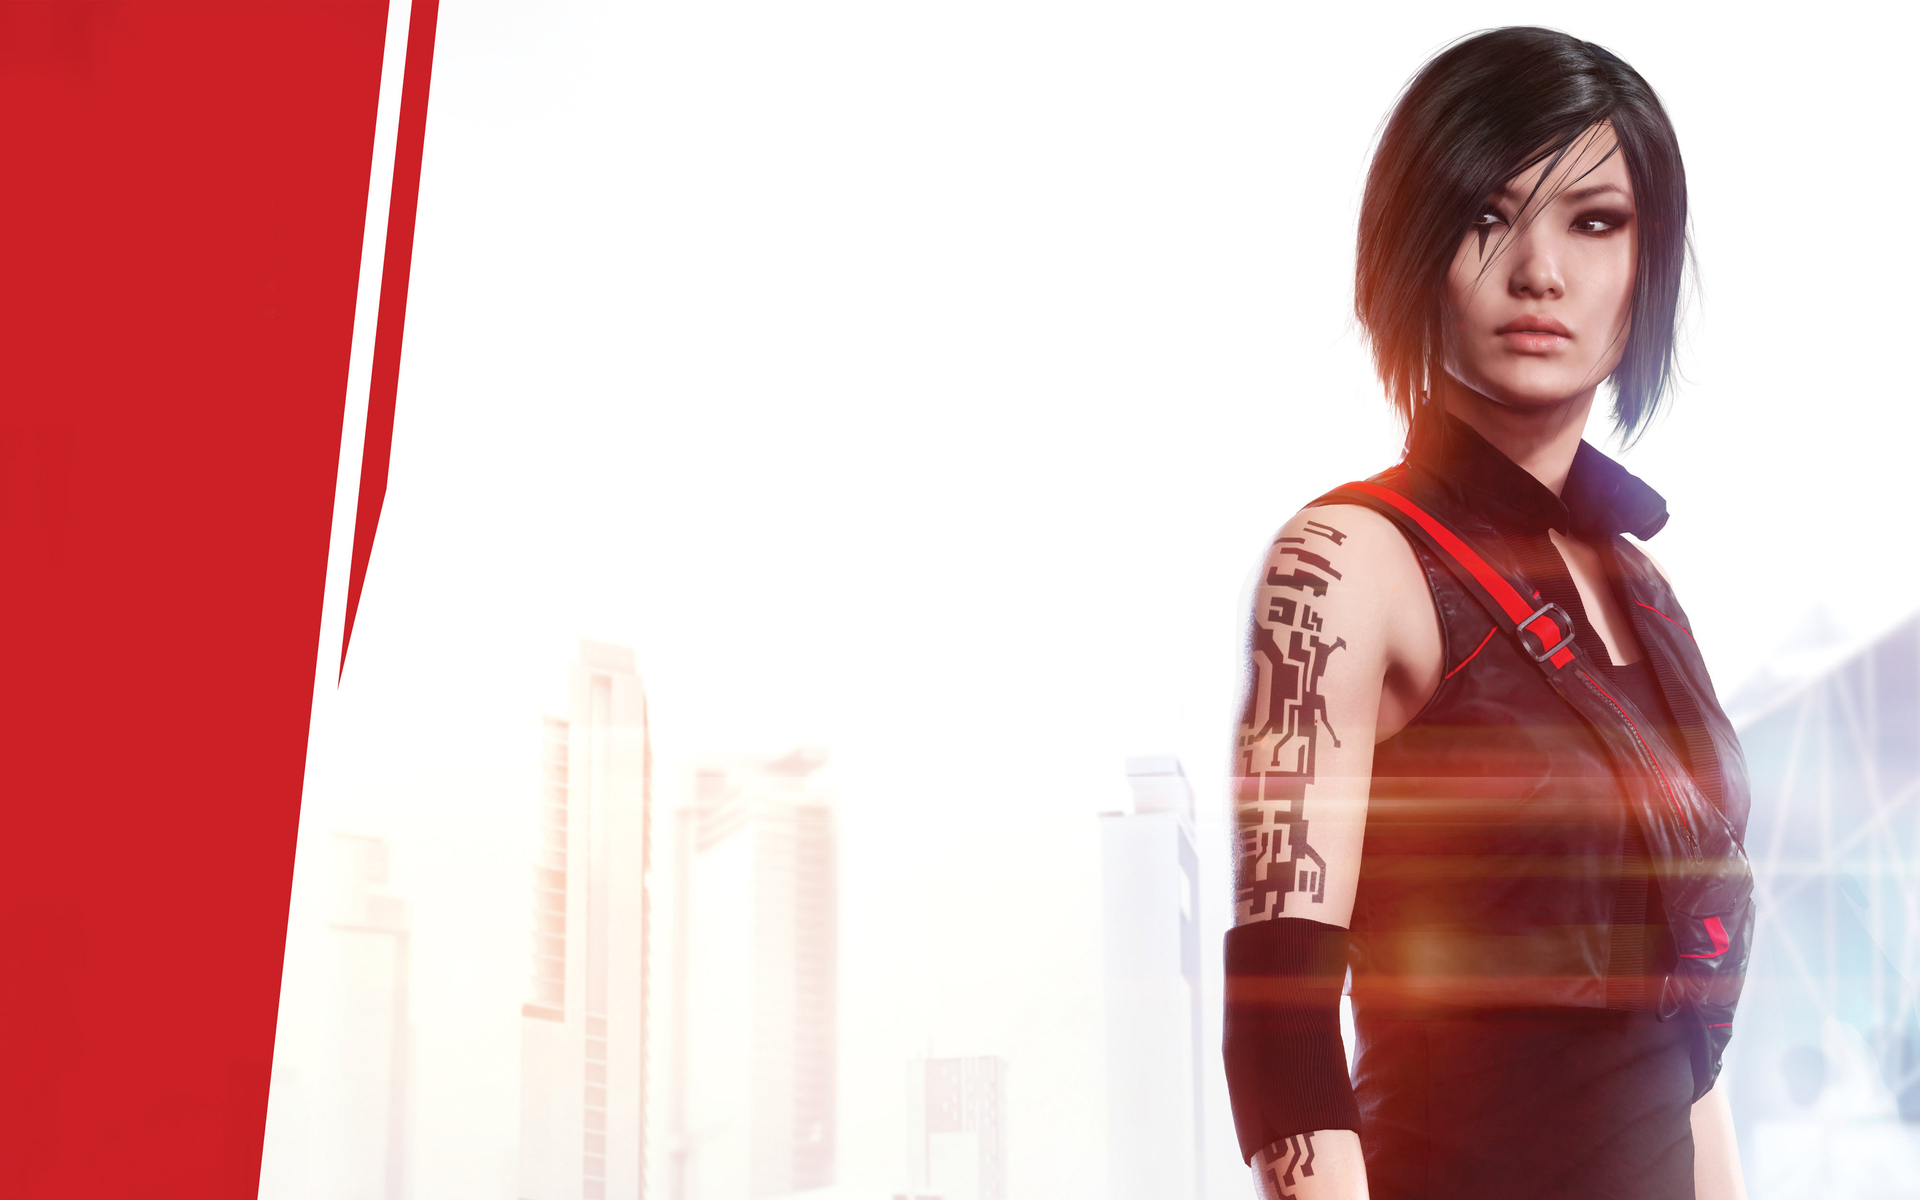 5k-mirrors-edge-catalyst-5z.jpg